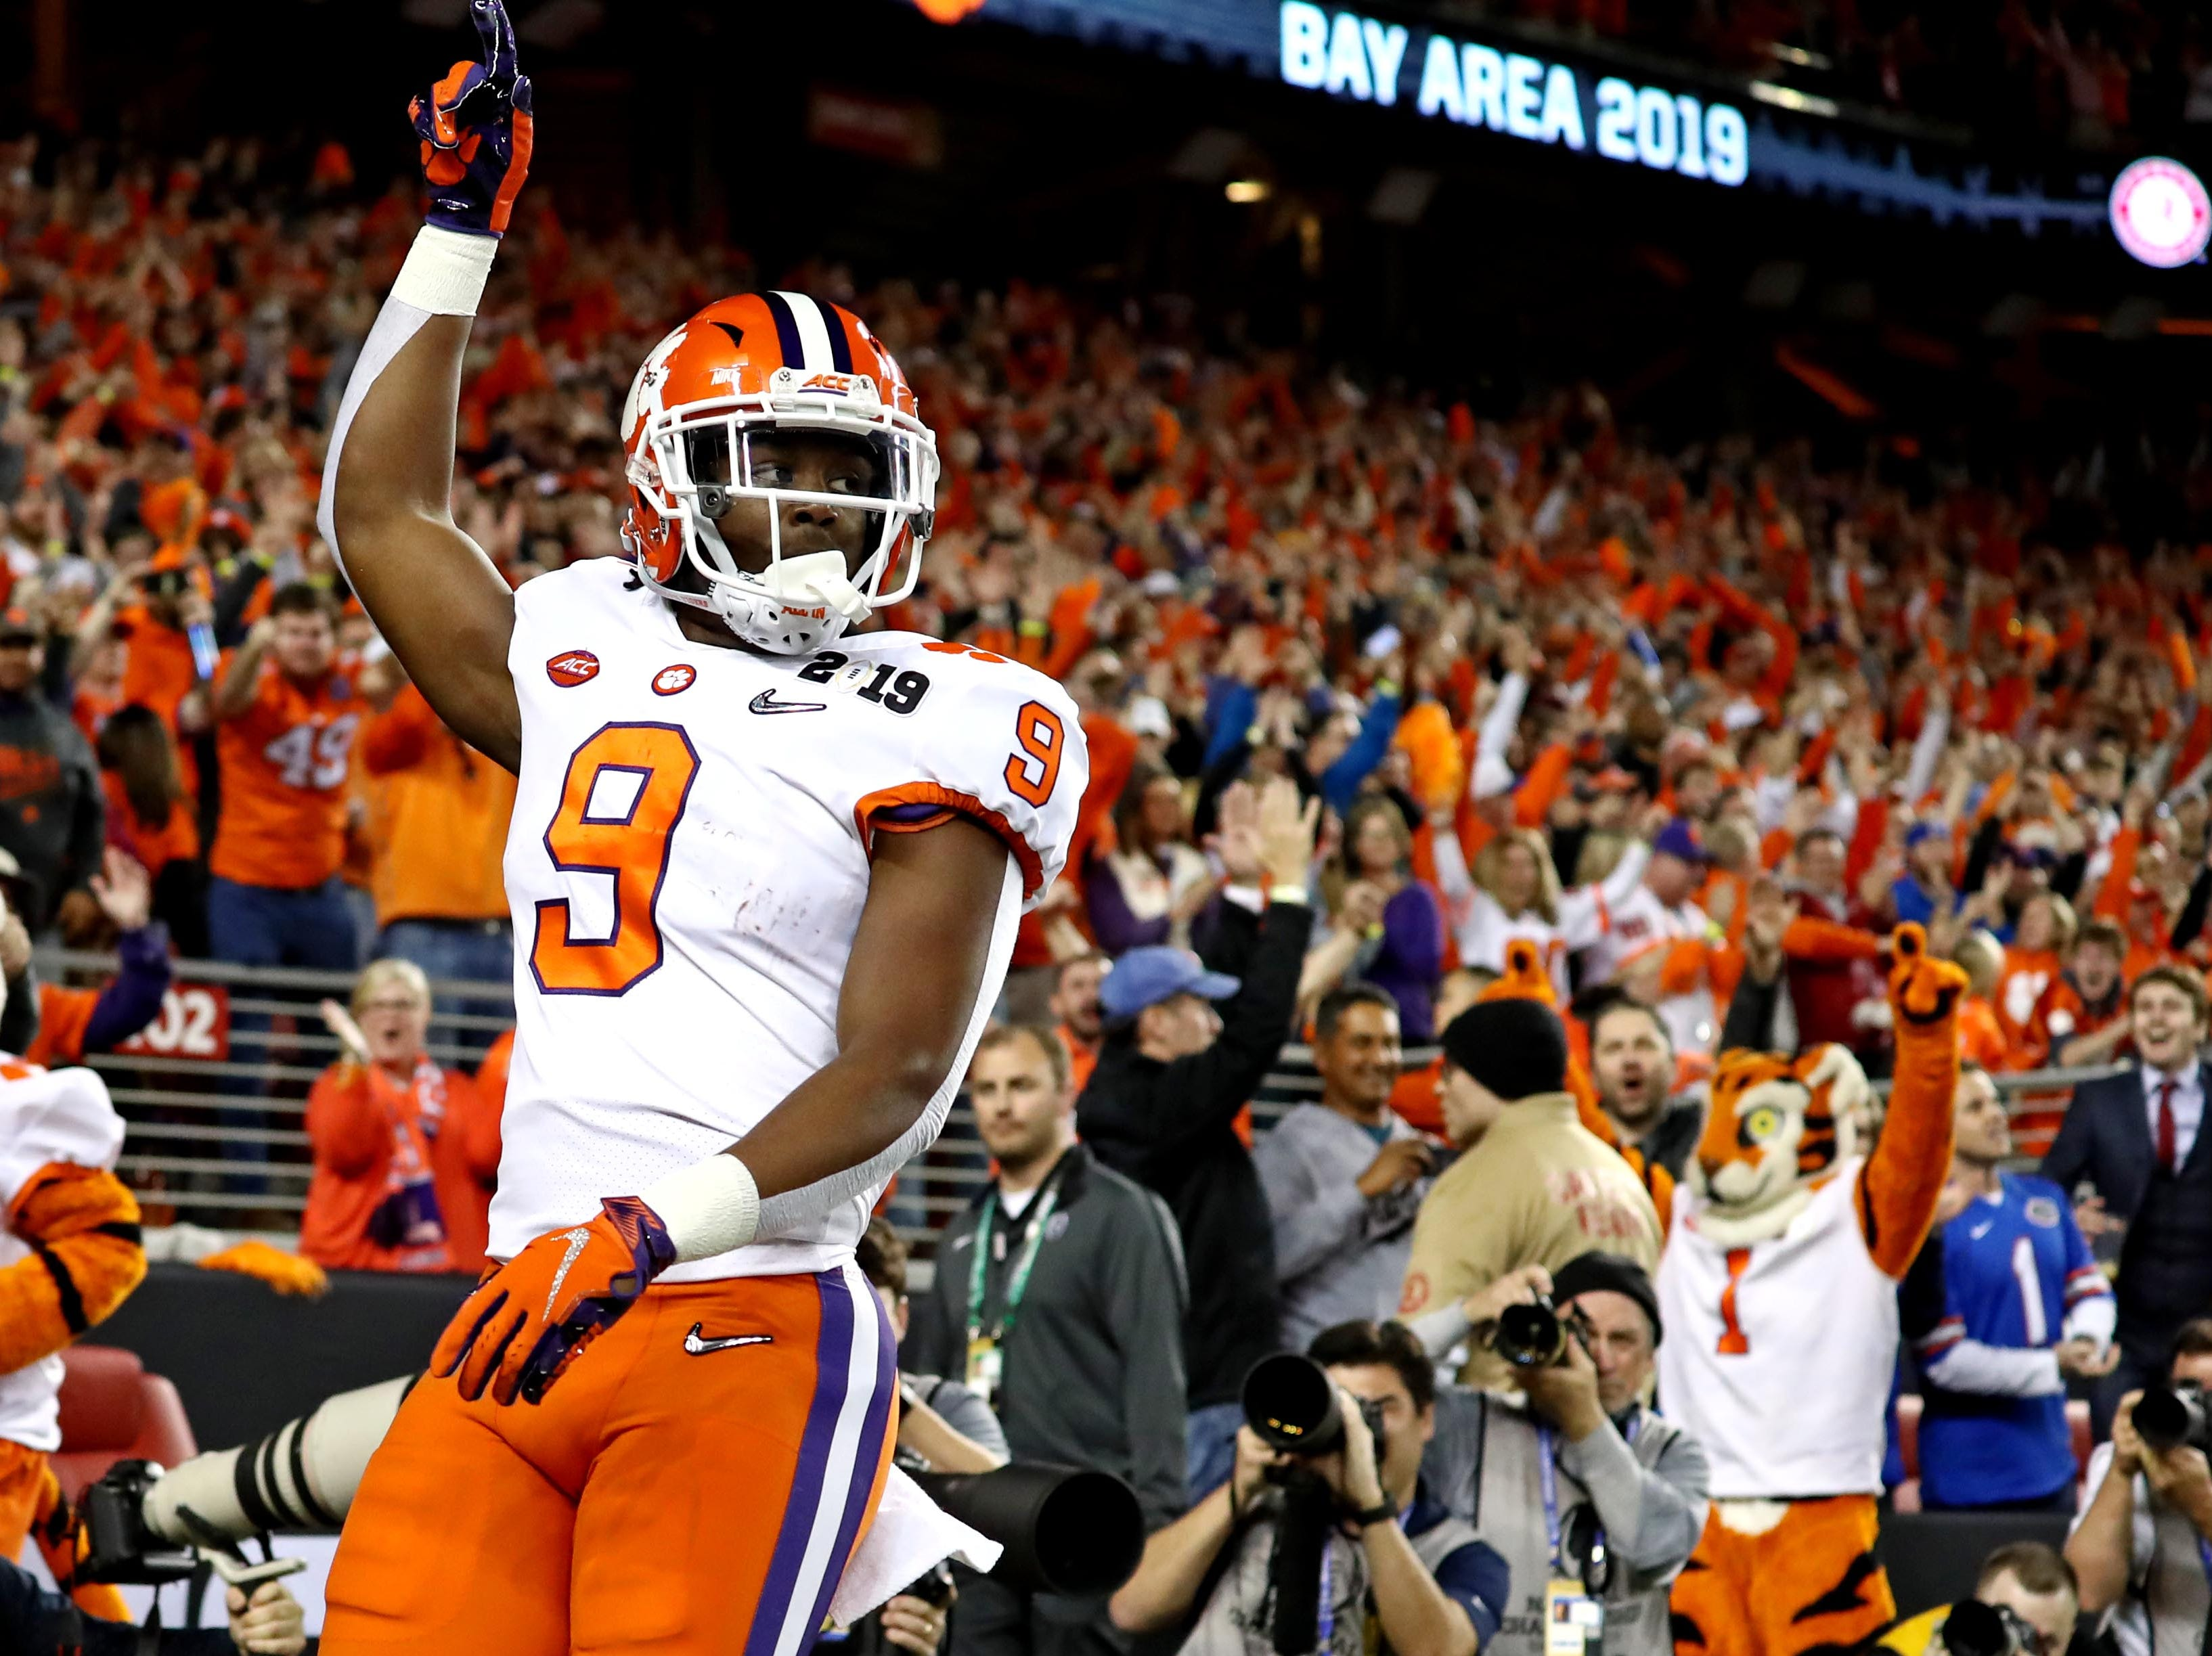 Jan 7, 2019; Santa Clara, CA, USA;  Clemson Tigers running back Travis Etienne (9) celebrates scoring a touchdown during the first quarter against the Alabama Crimson Tide during the 2019 College Football Playoff Championship game at Levi's Stadium. Mandatory Credit: Matthew Emmons-USA TODAY Sports